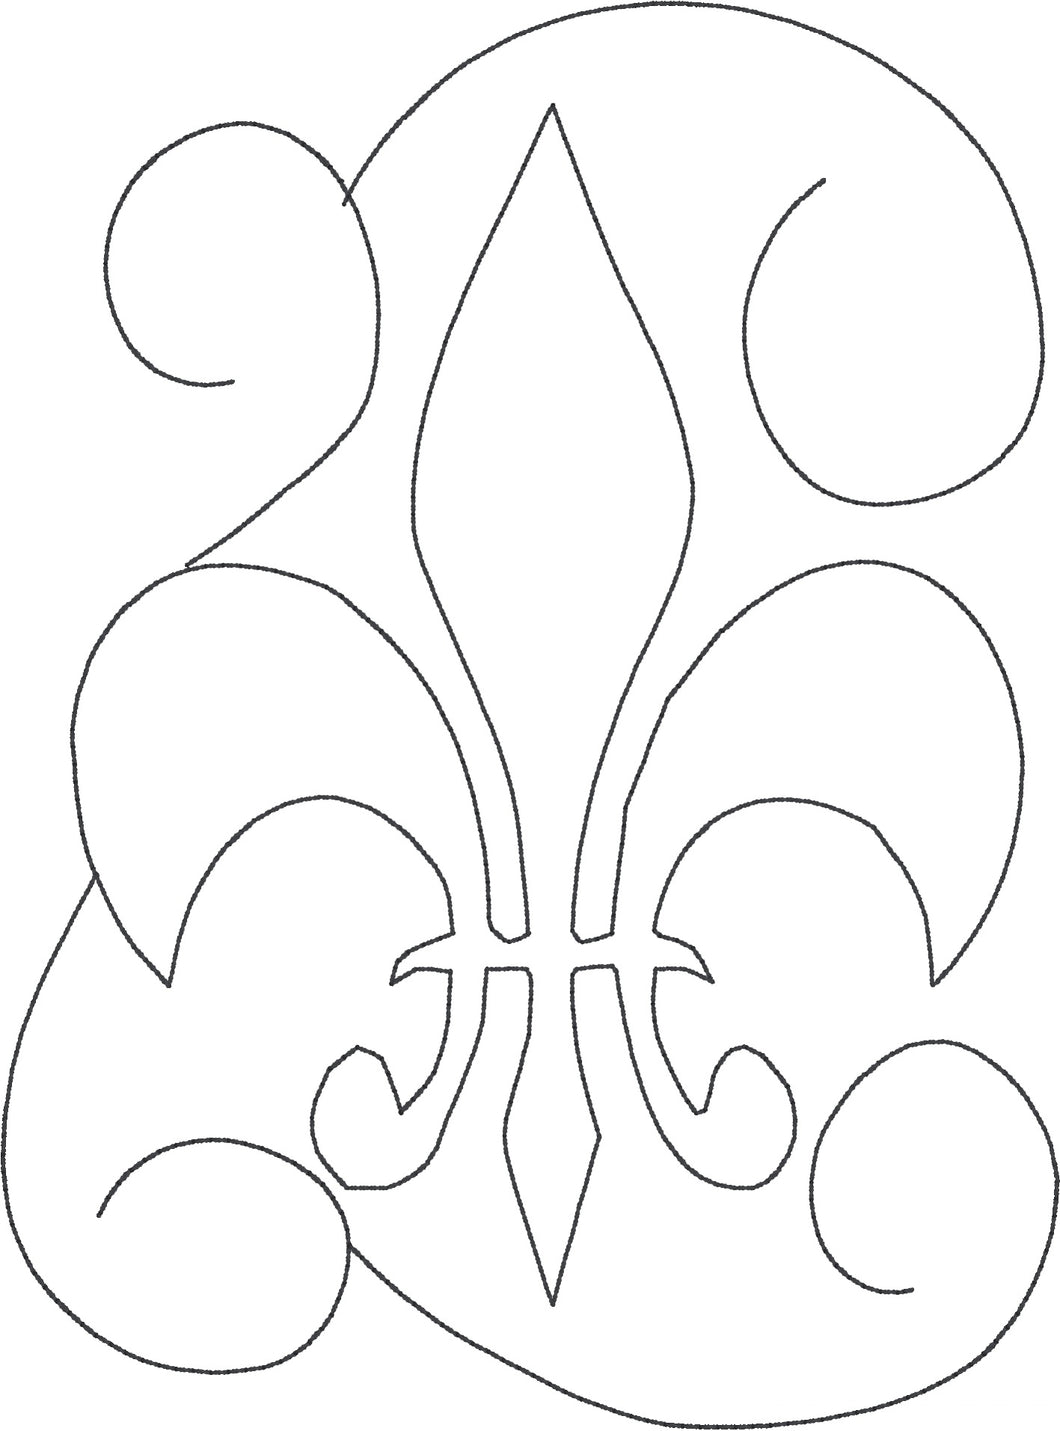 Fleur De Lis Swirl - Machine Embroidery Quilting Design - 5x7 Hoop - Beachside Knits N Quilts